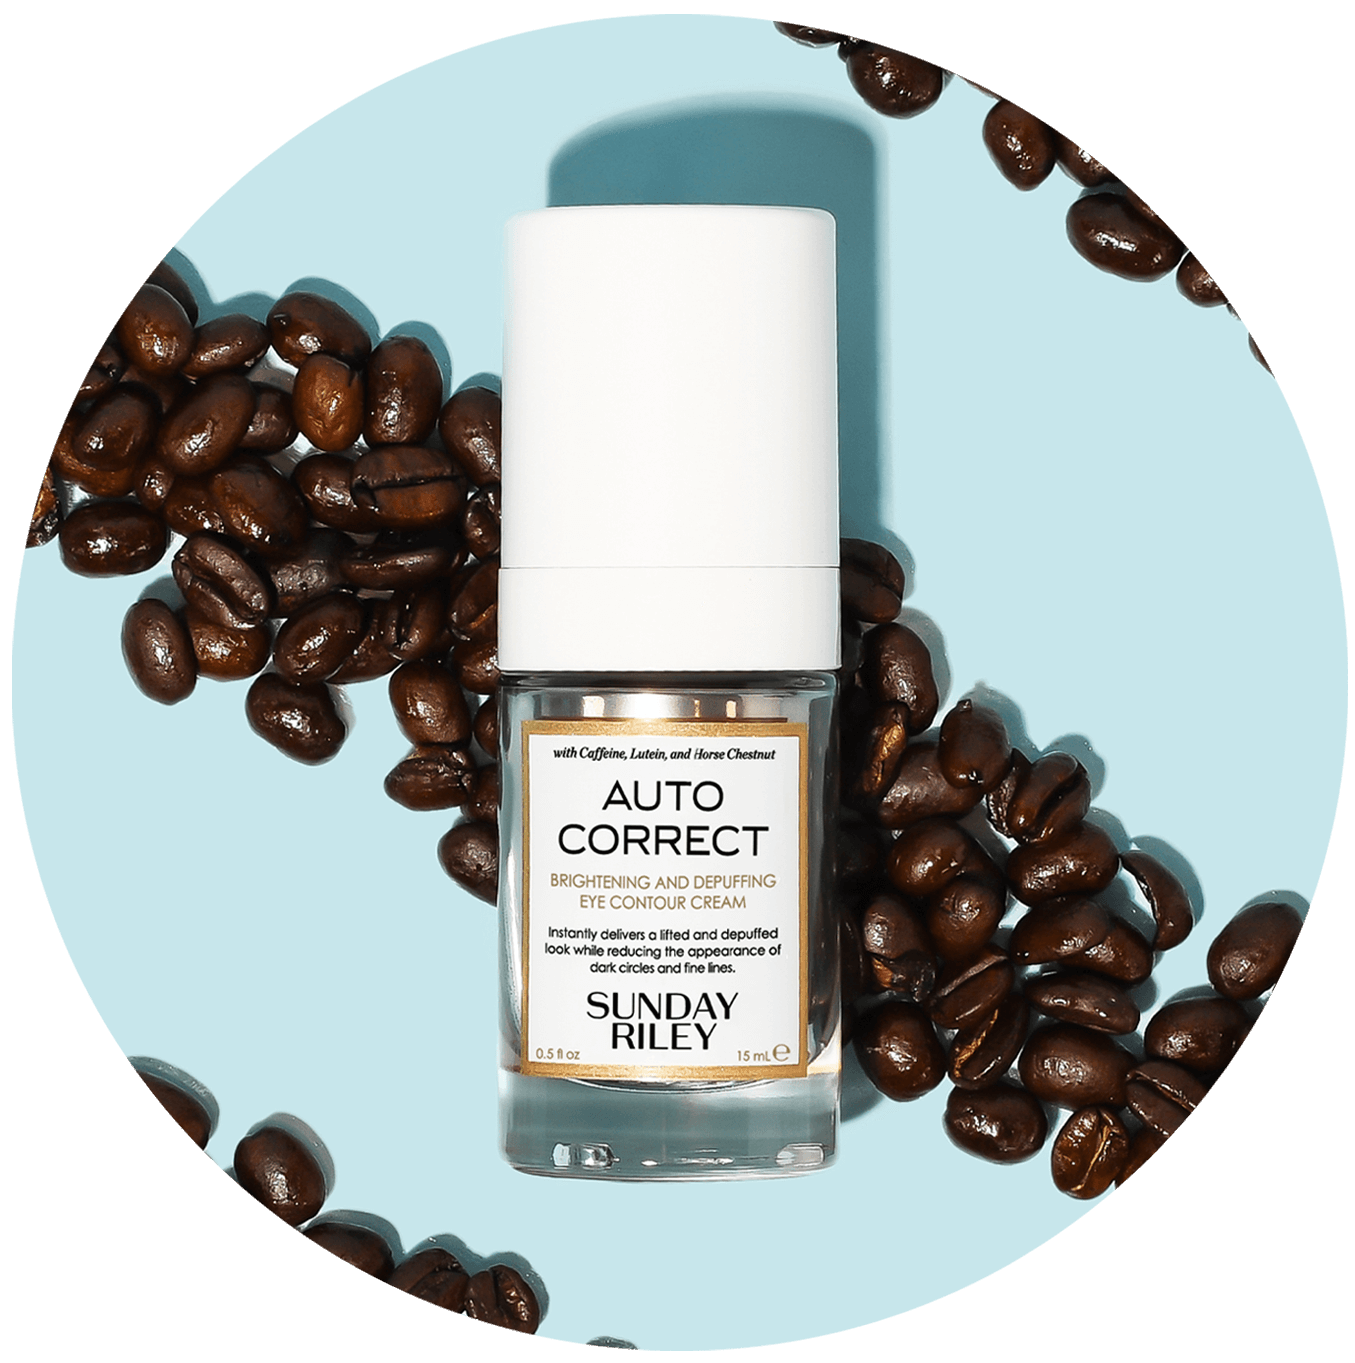 auto correct brightening and depuffing eye contour cream bottle on coffee beans and blue background